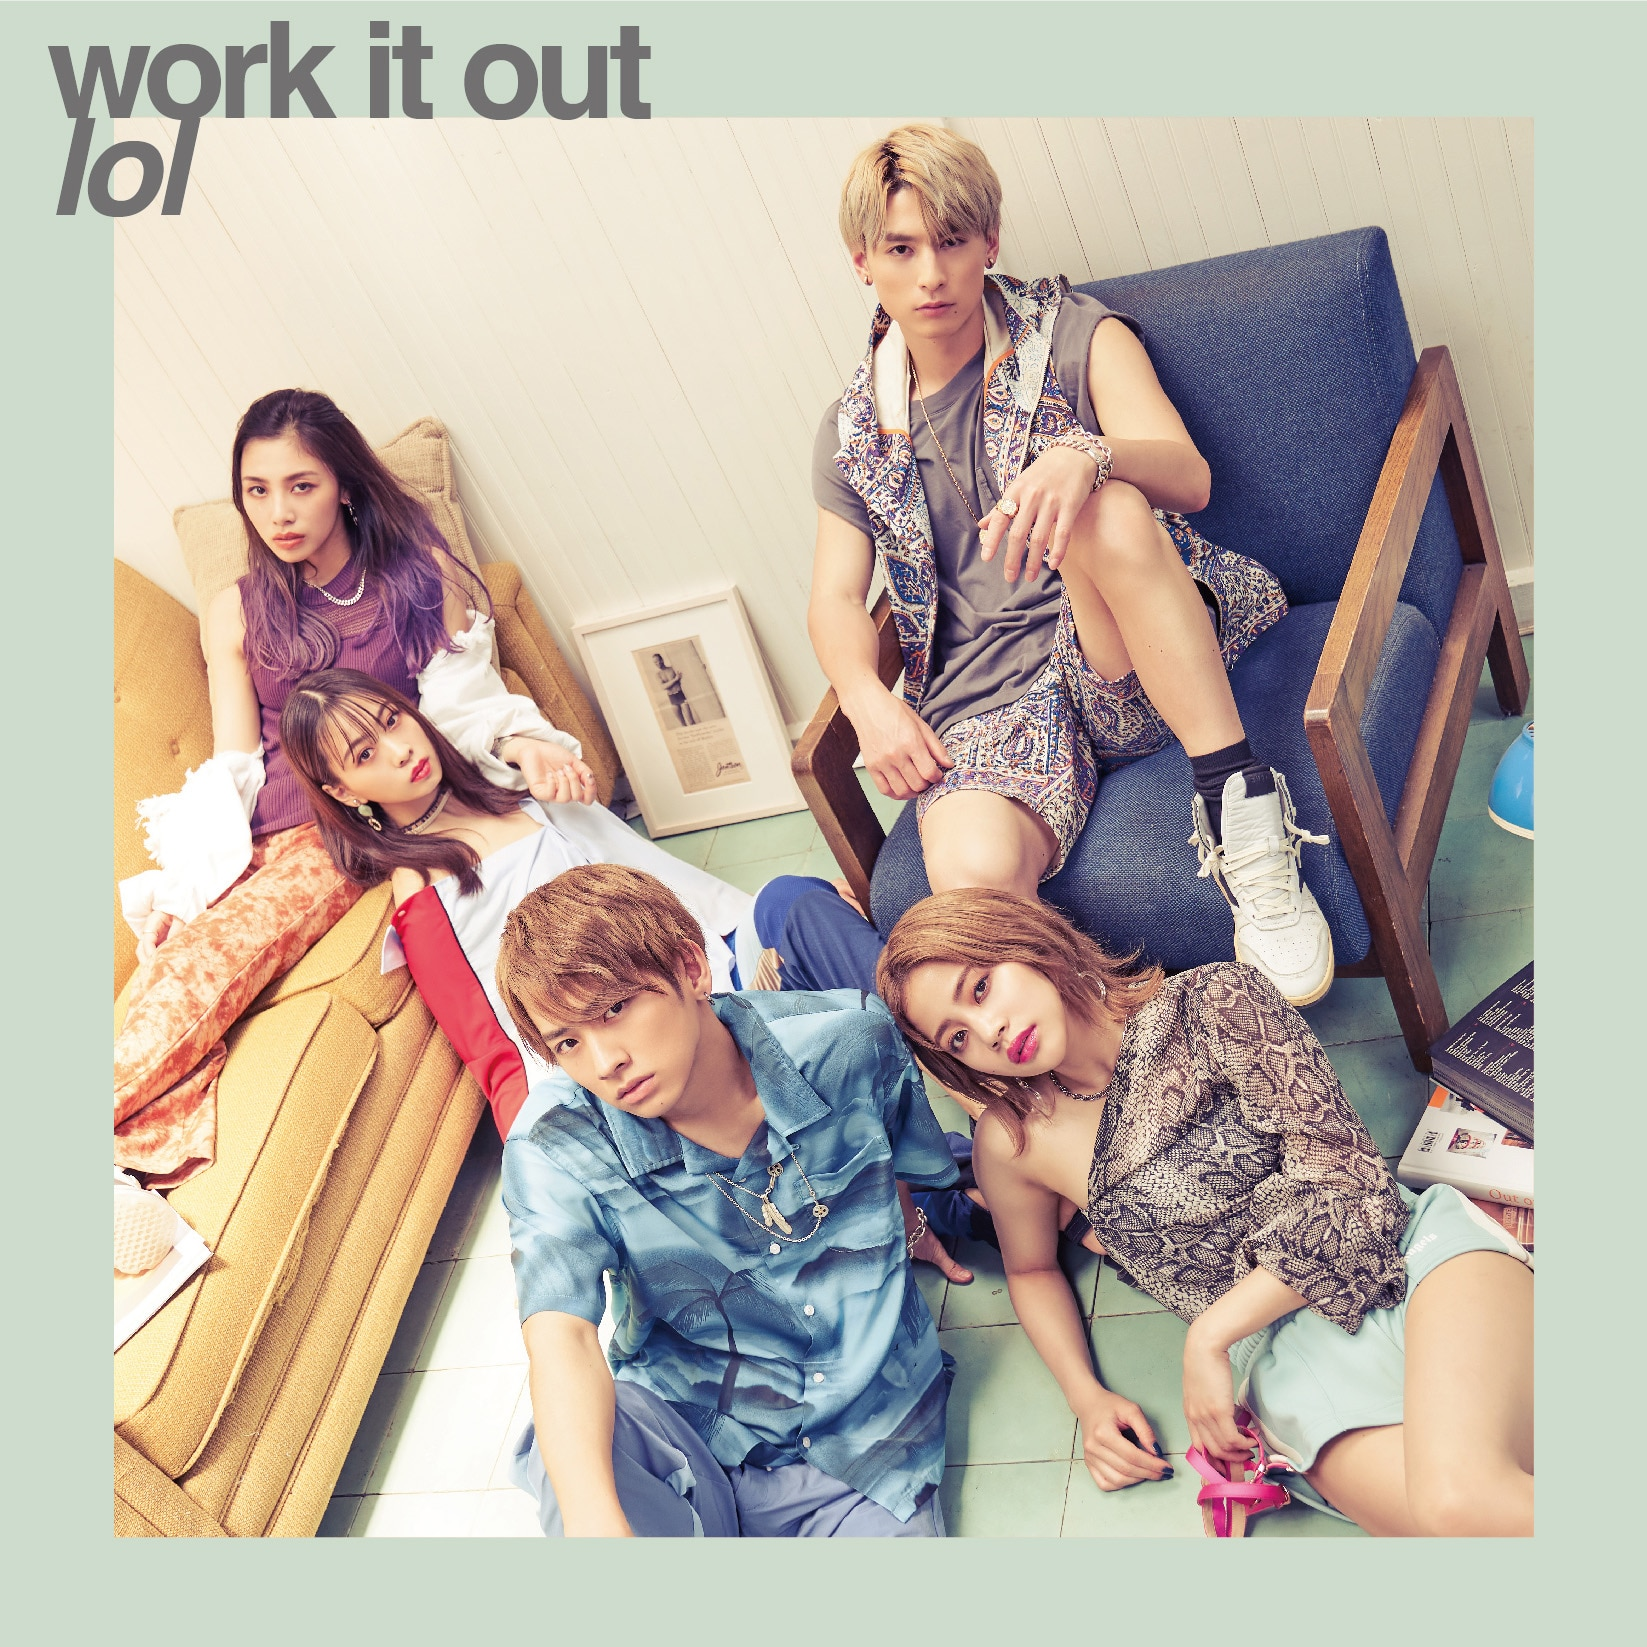 「work it out」